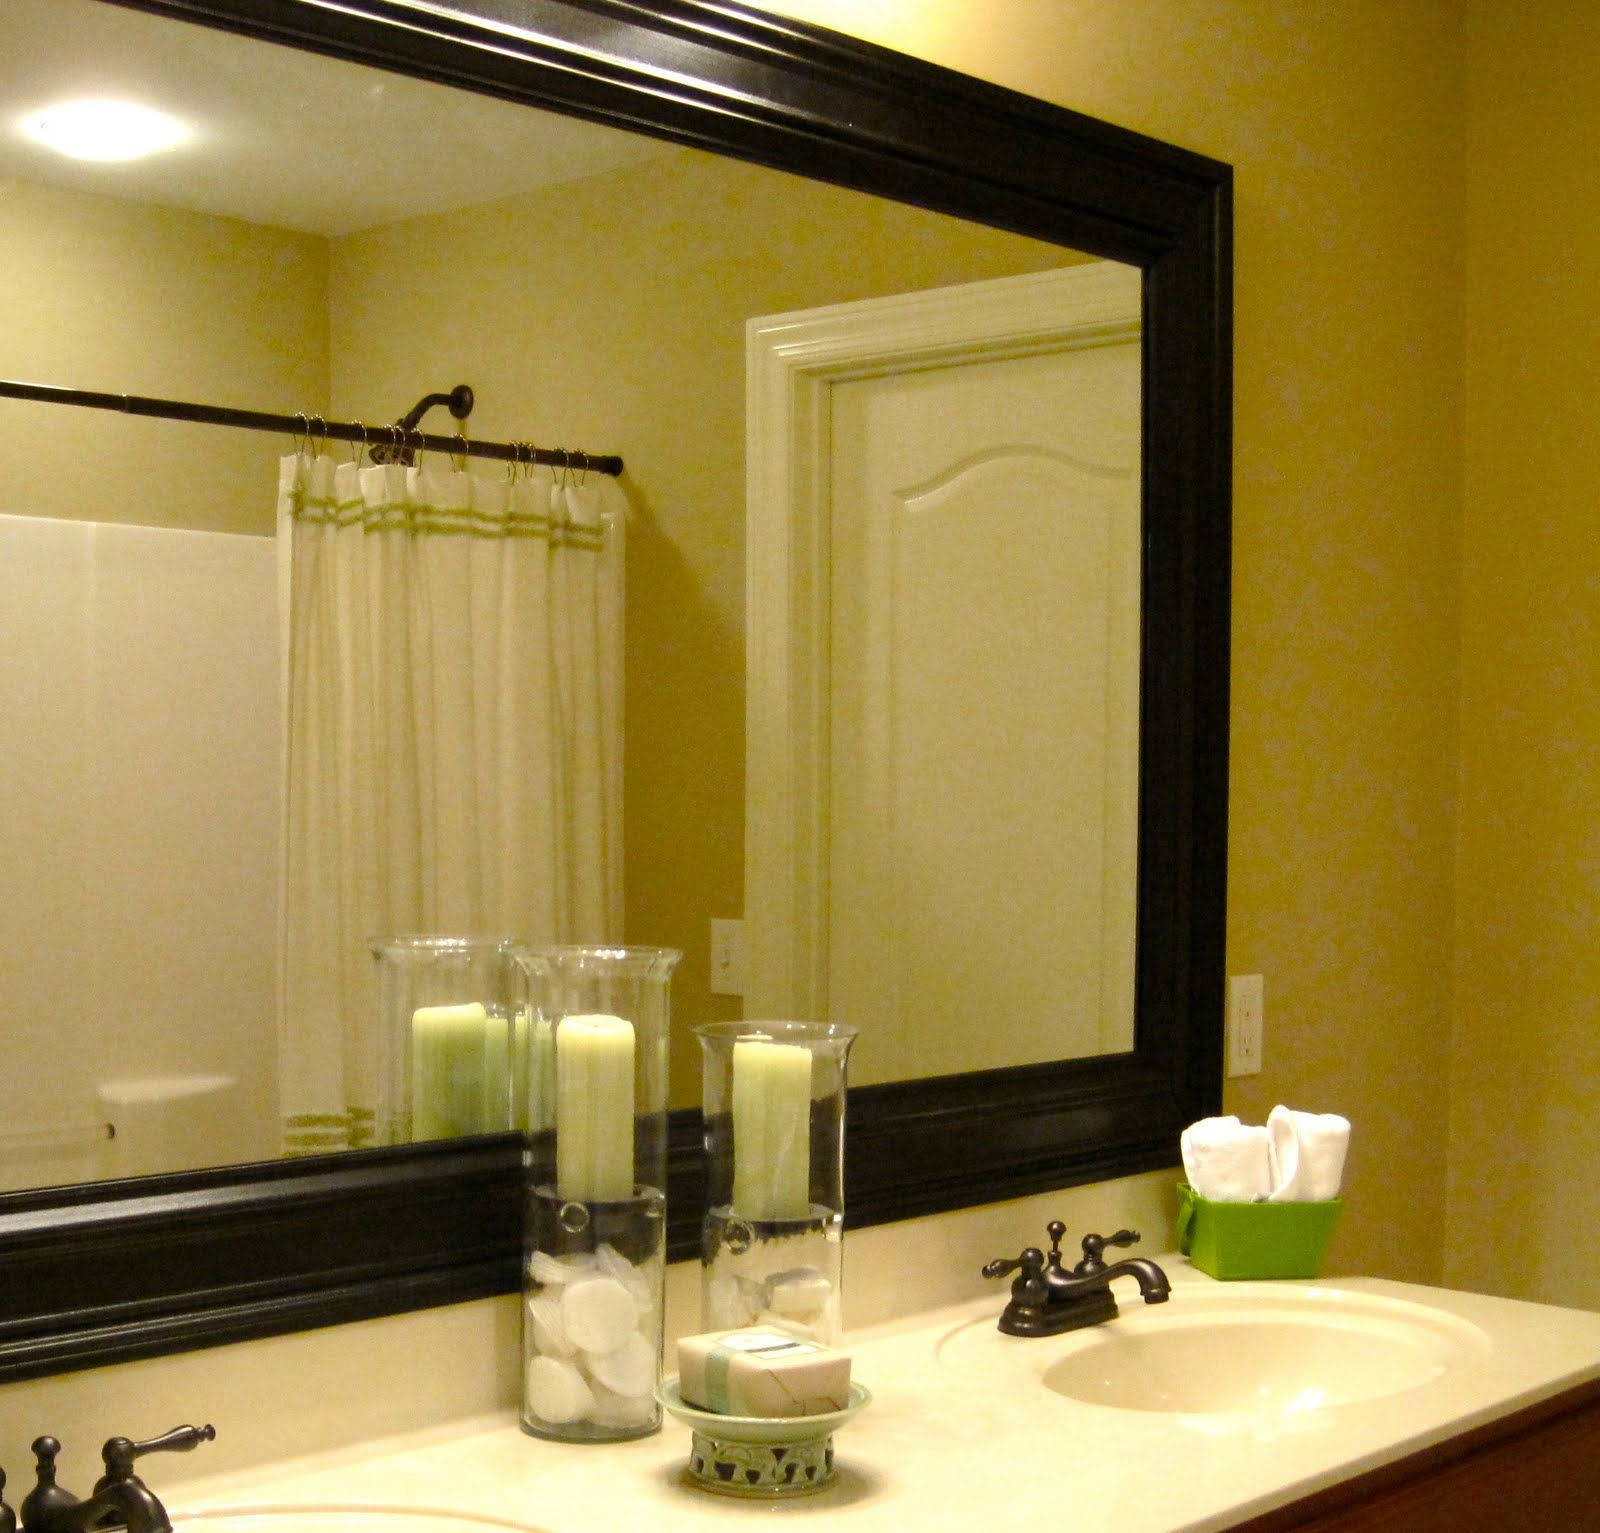 Modern Bathroom Mirror Frames Inside Modern Home Is Based On The Type Of Furniture And Fixtures Installed In Dwelling Checkout 25 Bathroom Mirror Designs For Your Inspiration Modern Bathroom Mirror Designs Mirrors Frame